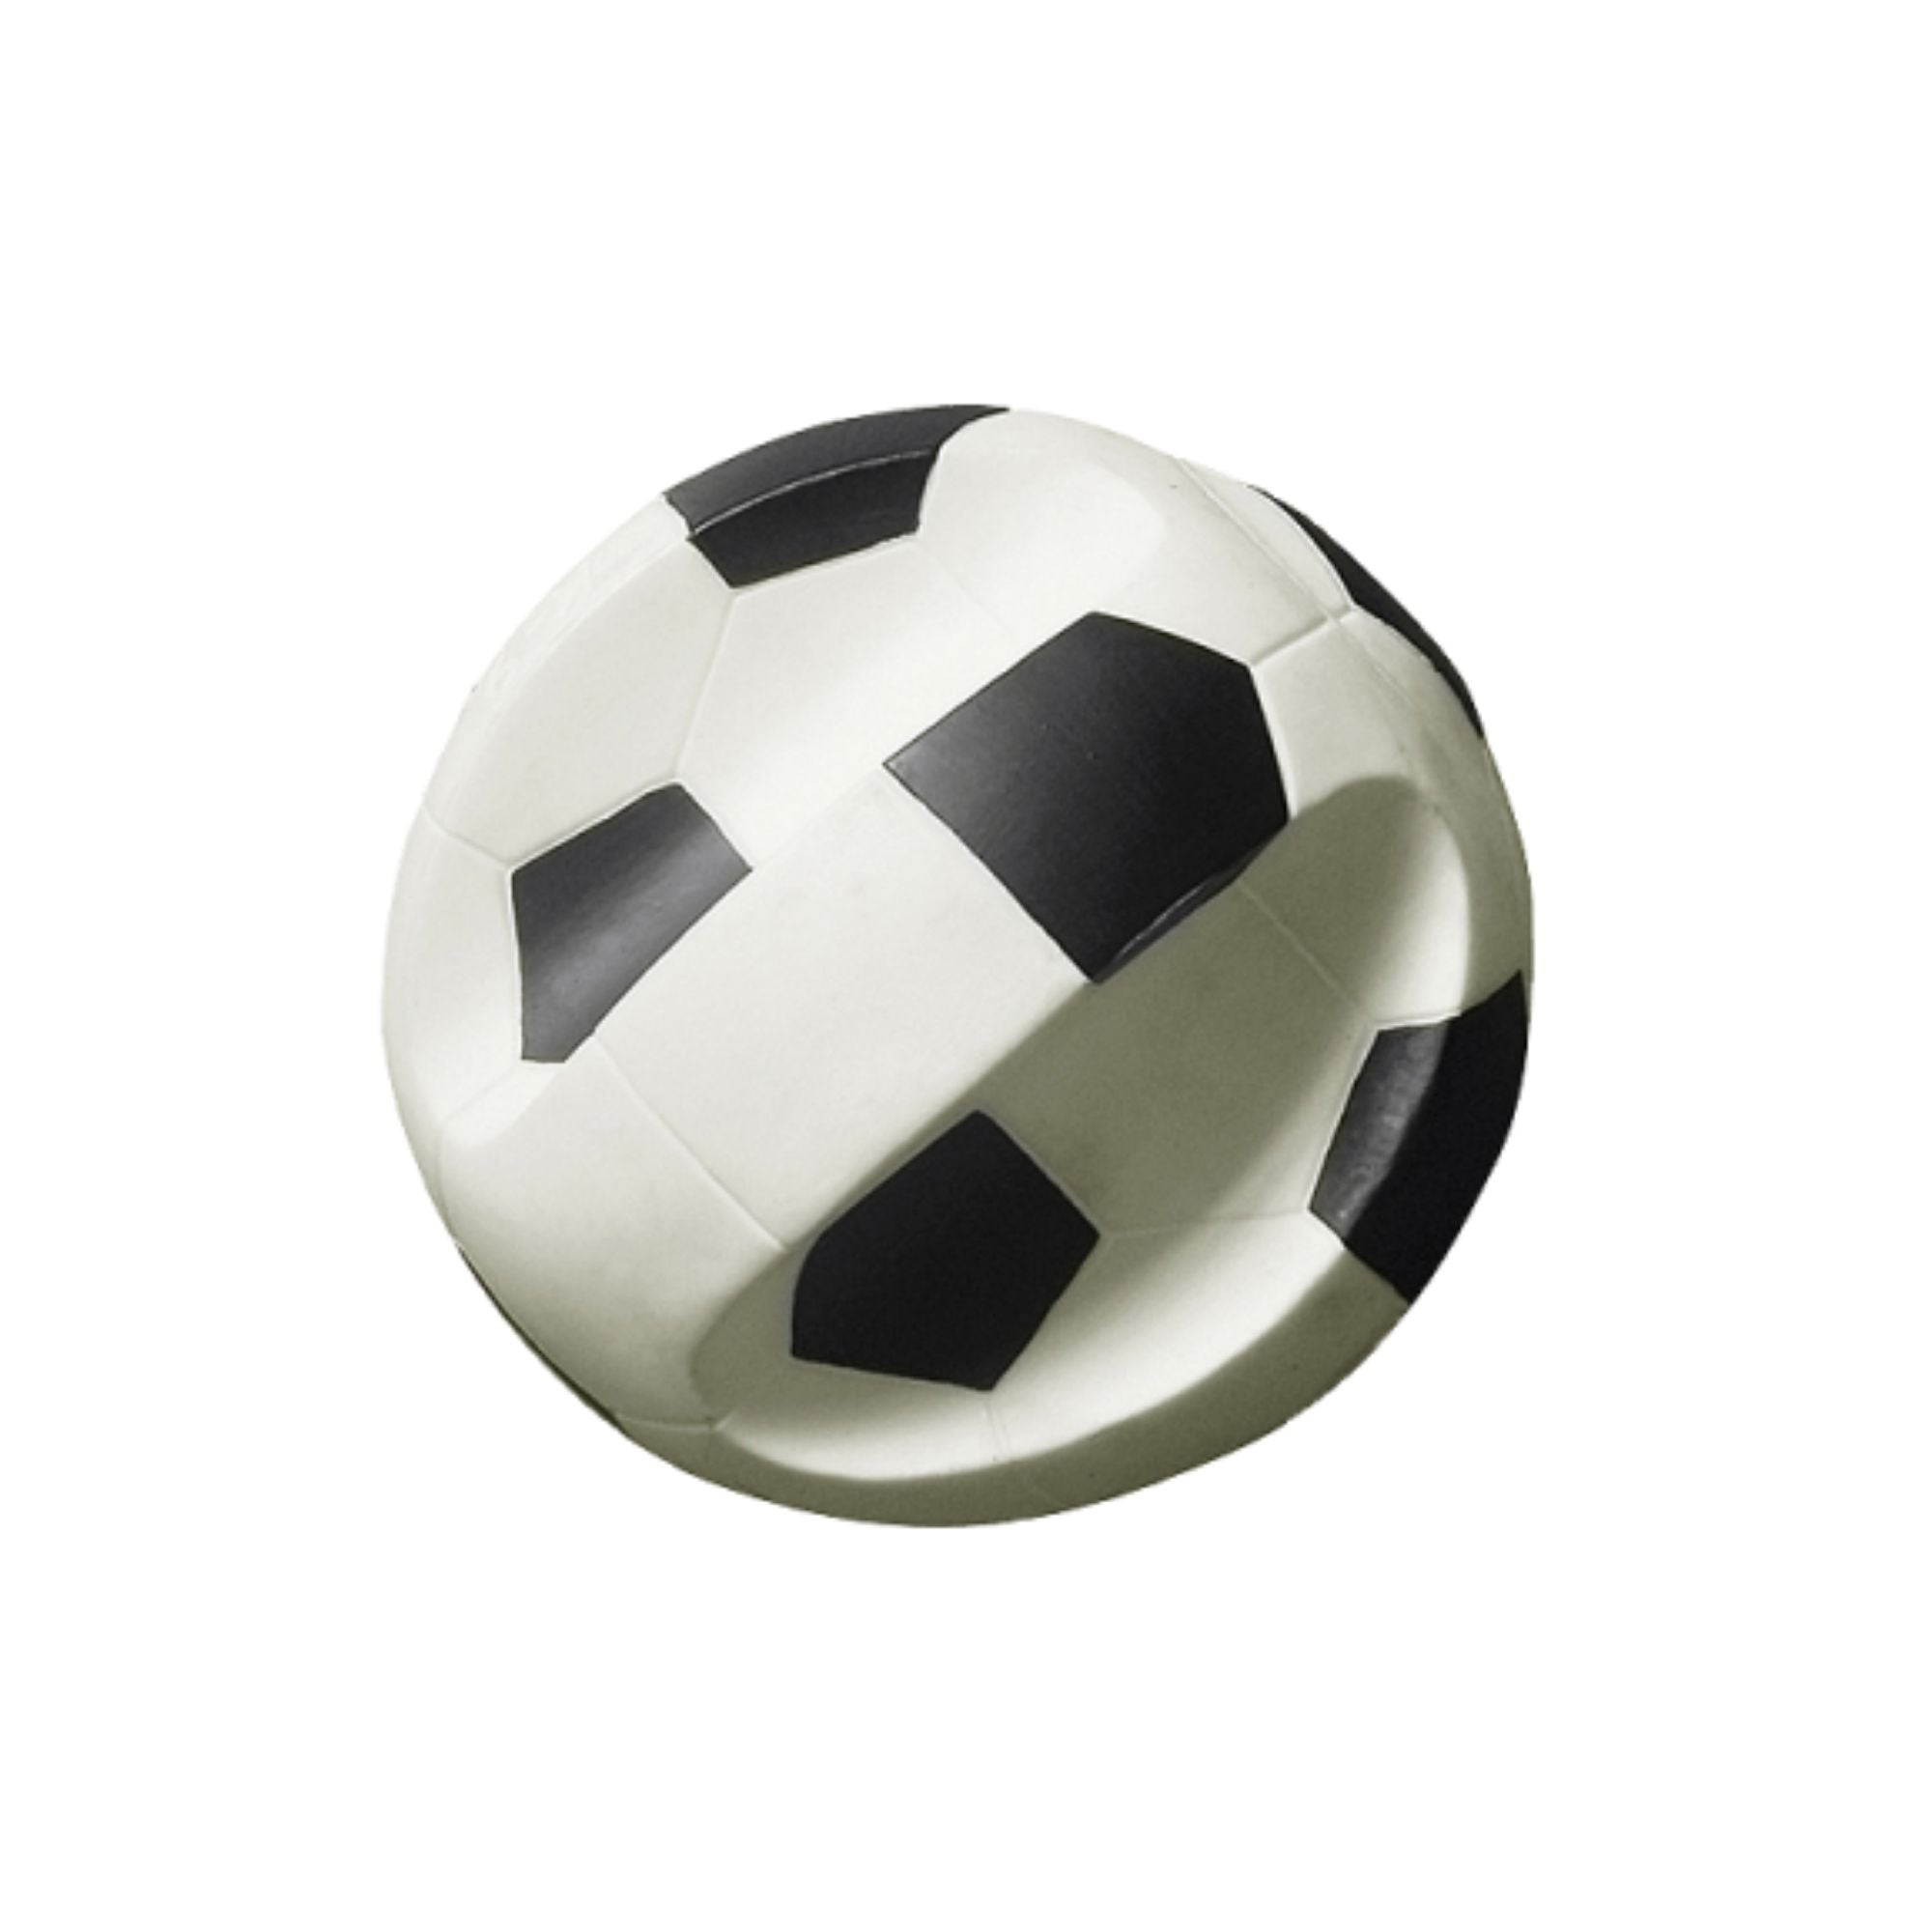 Gor Pets Gor Vinyl Super Soccer Ball, Football for Dogs | Barks & Bunnies